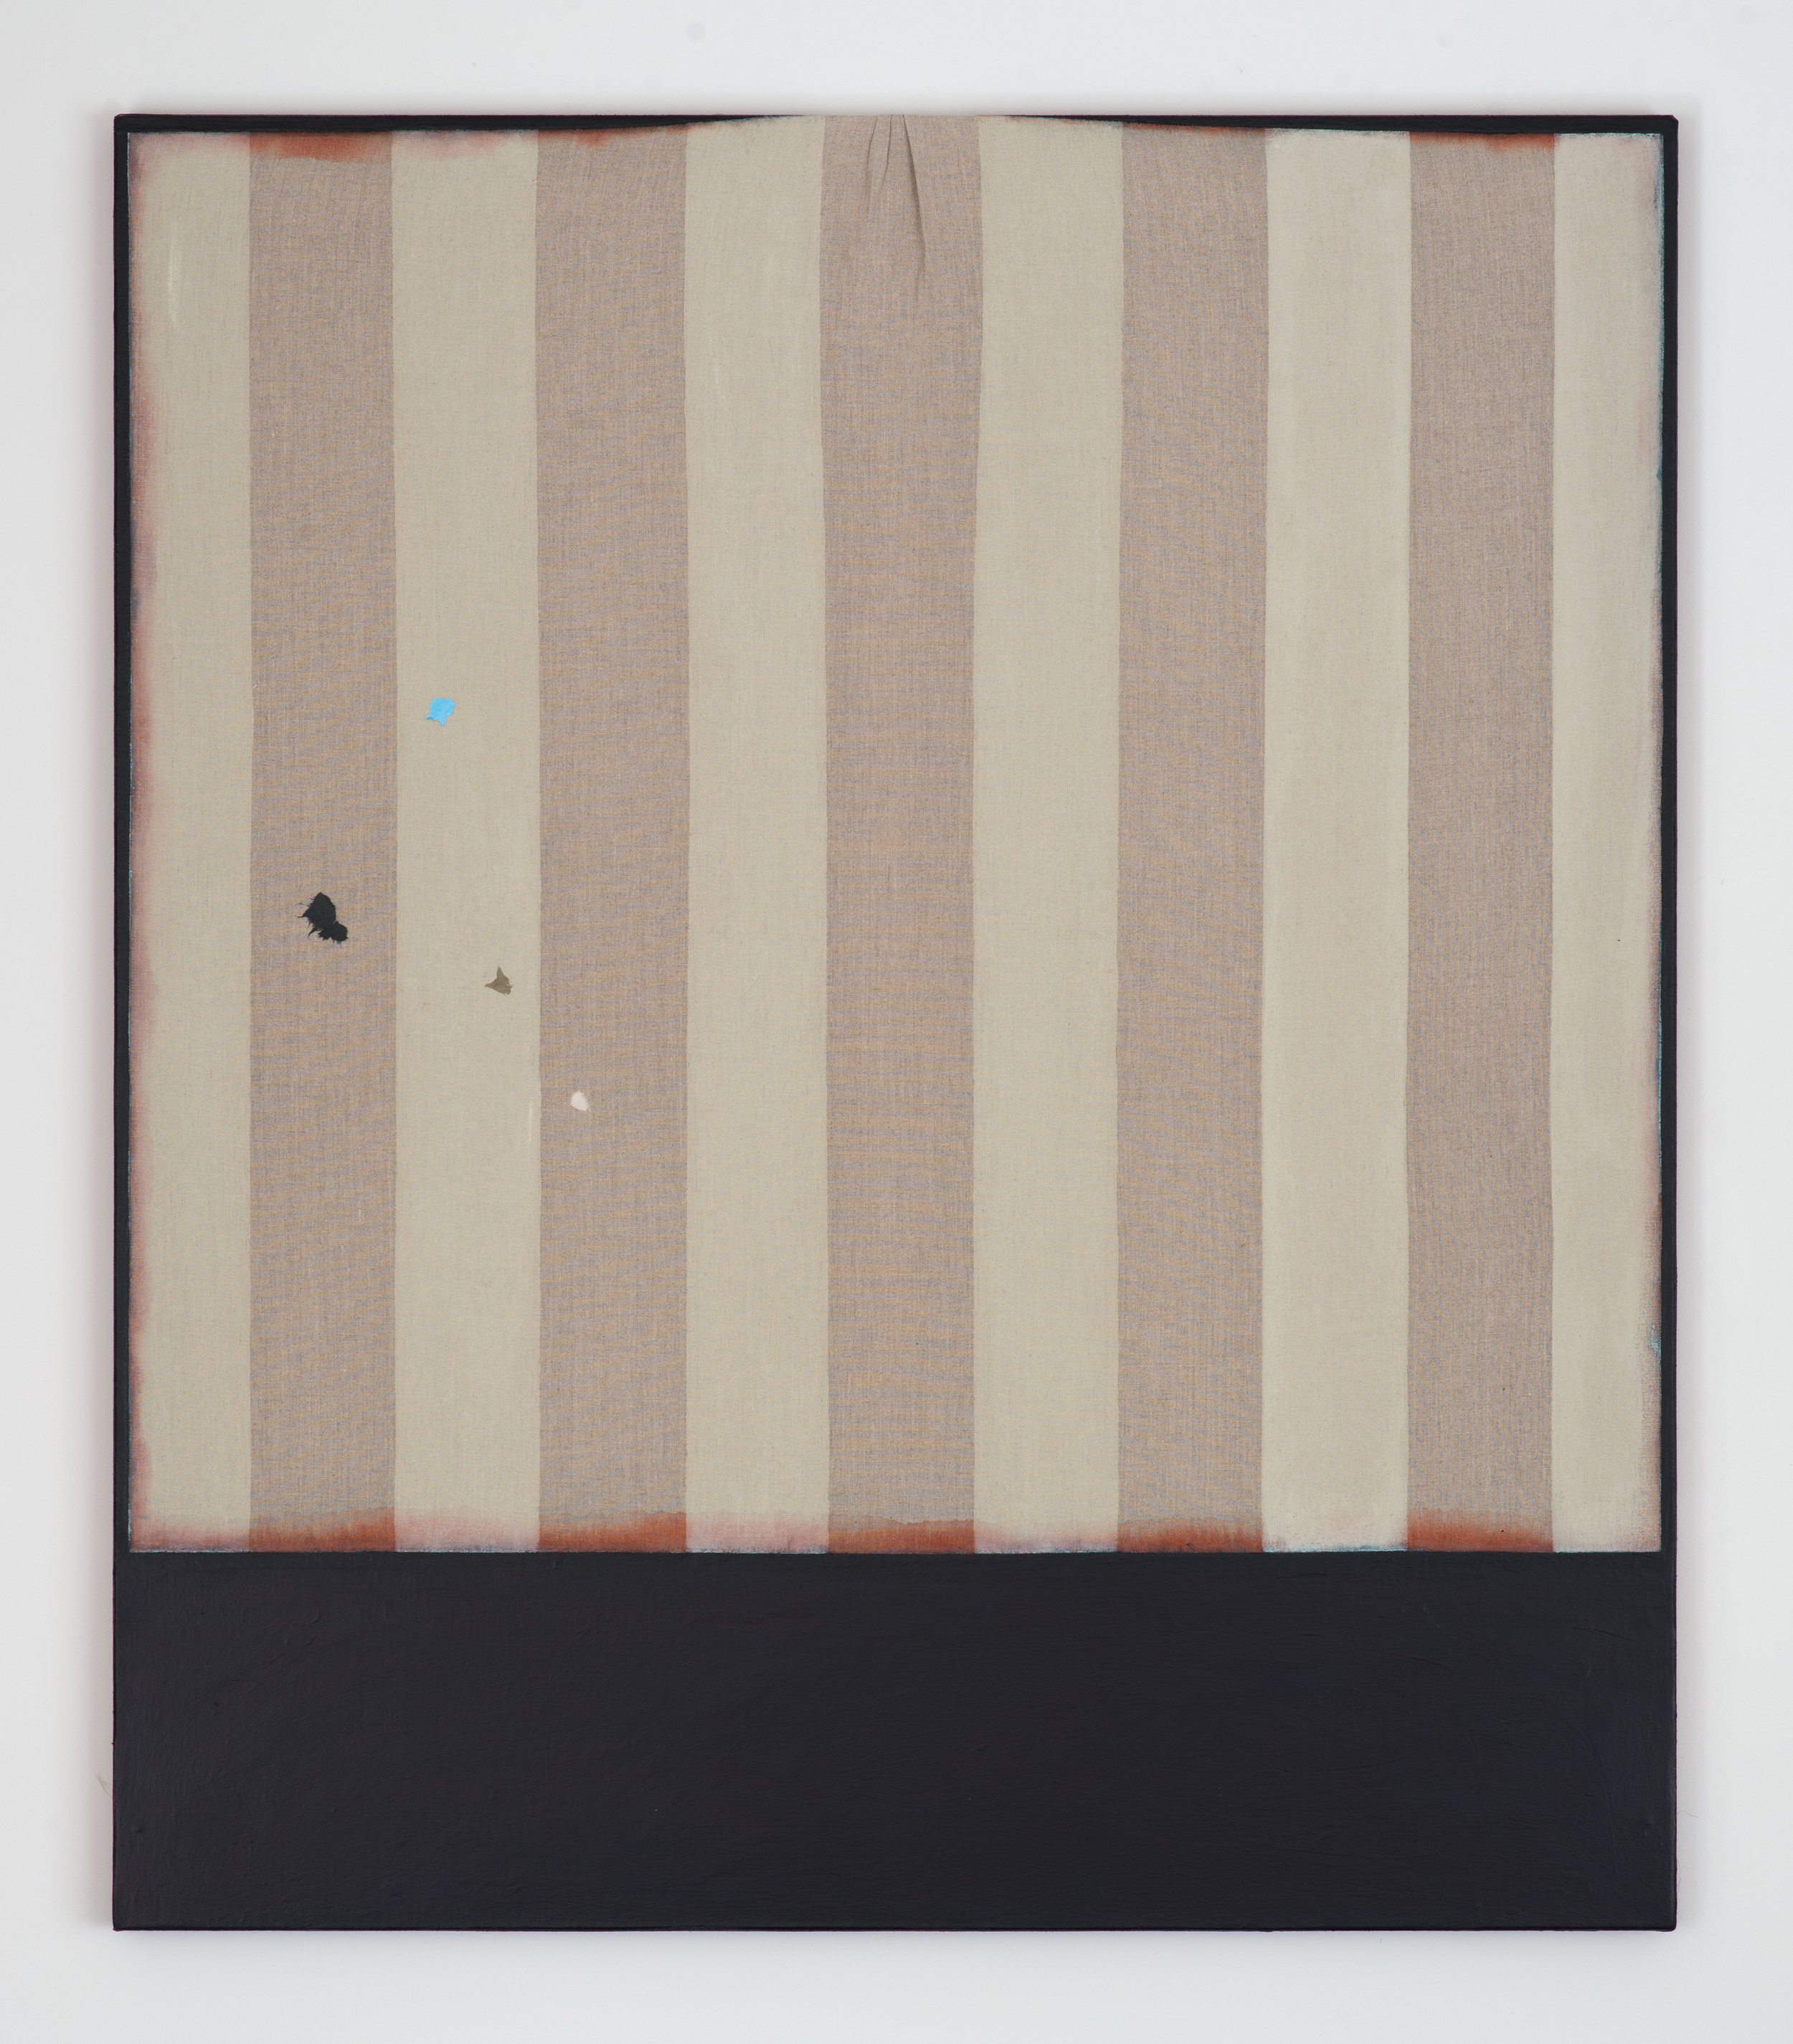 Peter Adsett, Painting number 2, 2013, Acrylic on linen, 106.5 x 91.5 x 2.2cm, IMG X Tom Teutenberg.jpg